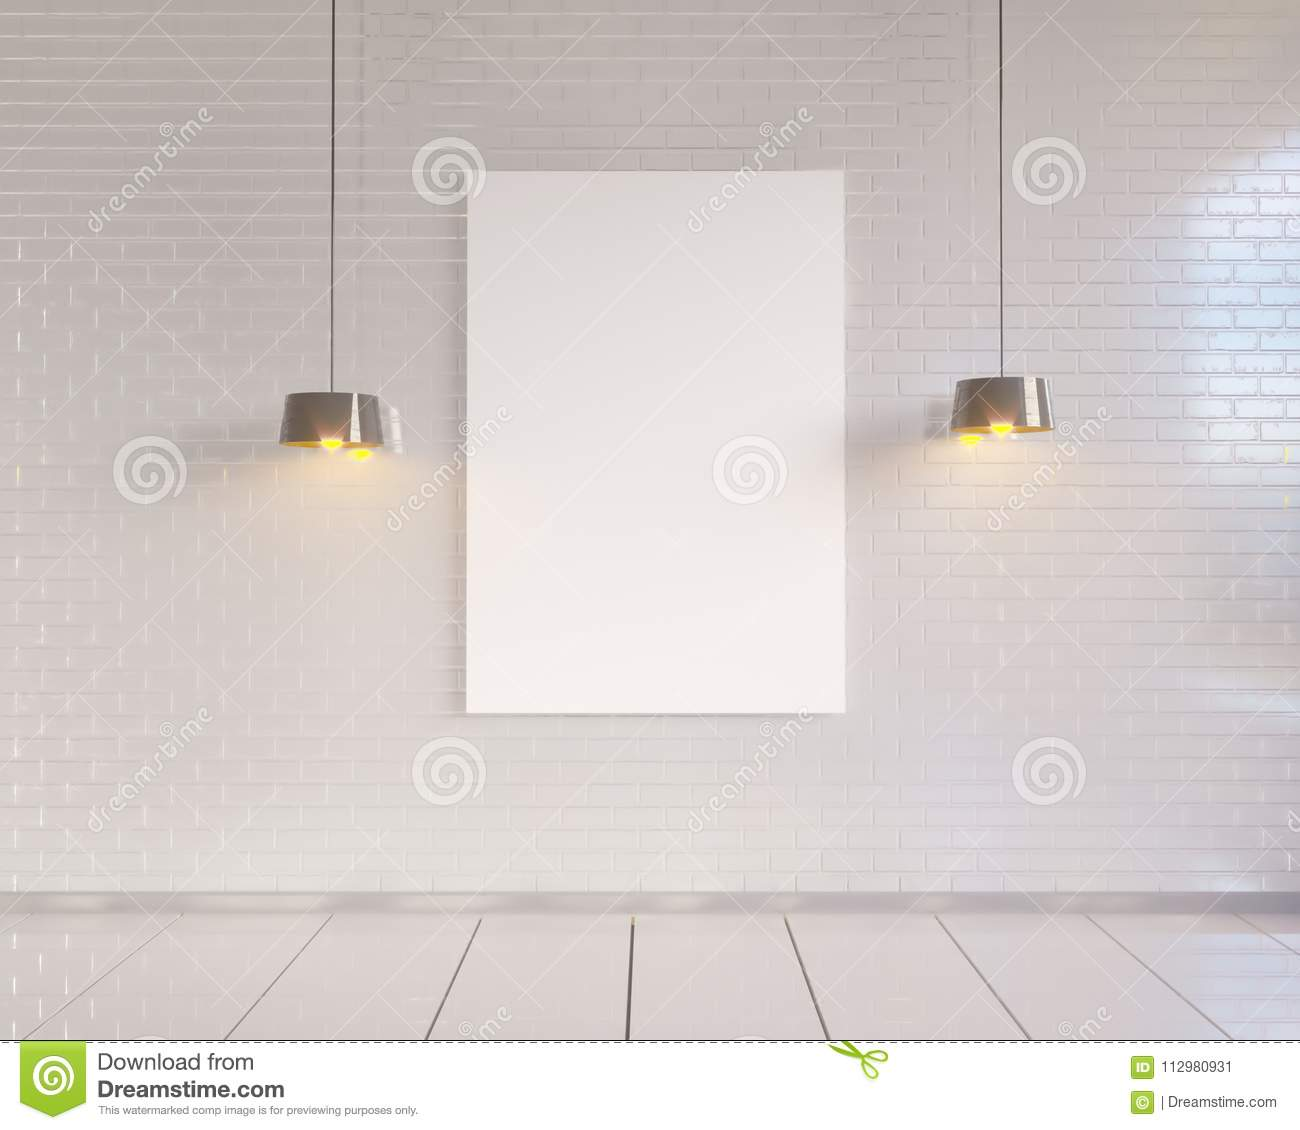 Mock up poster with vintage pastel hipster minimalism loft interior background, 3D rendering